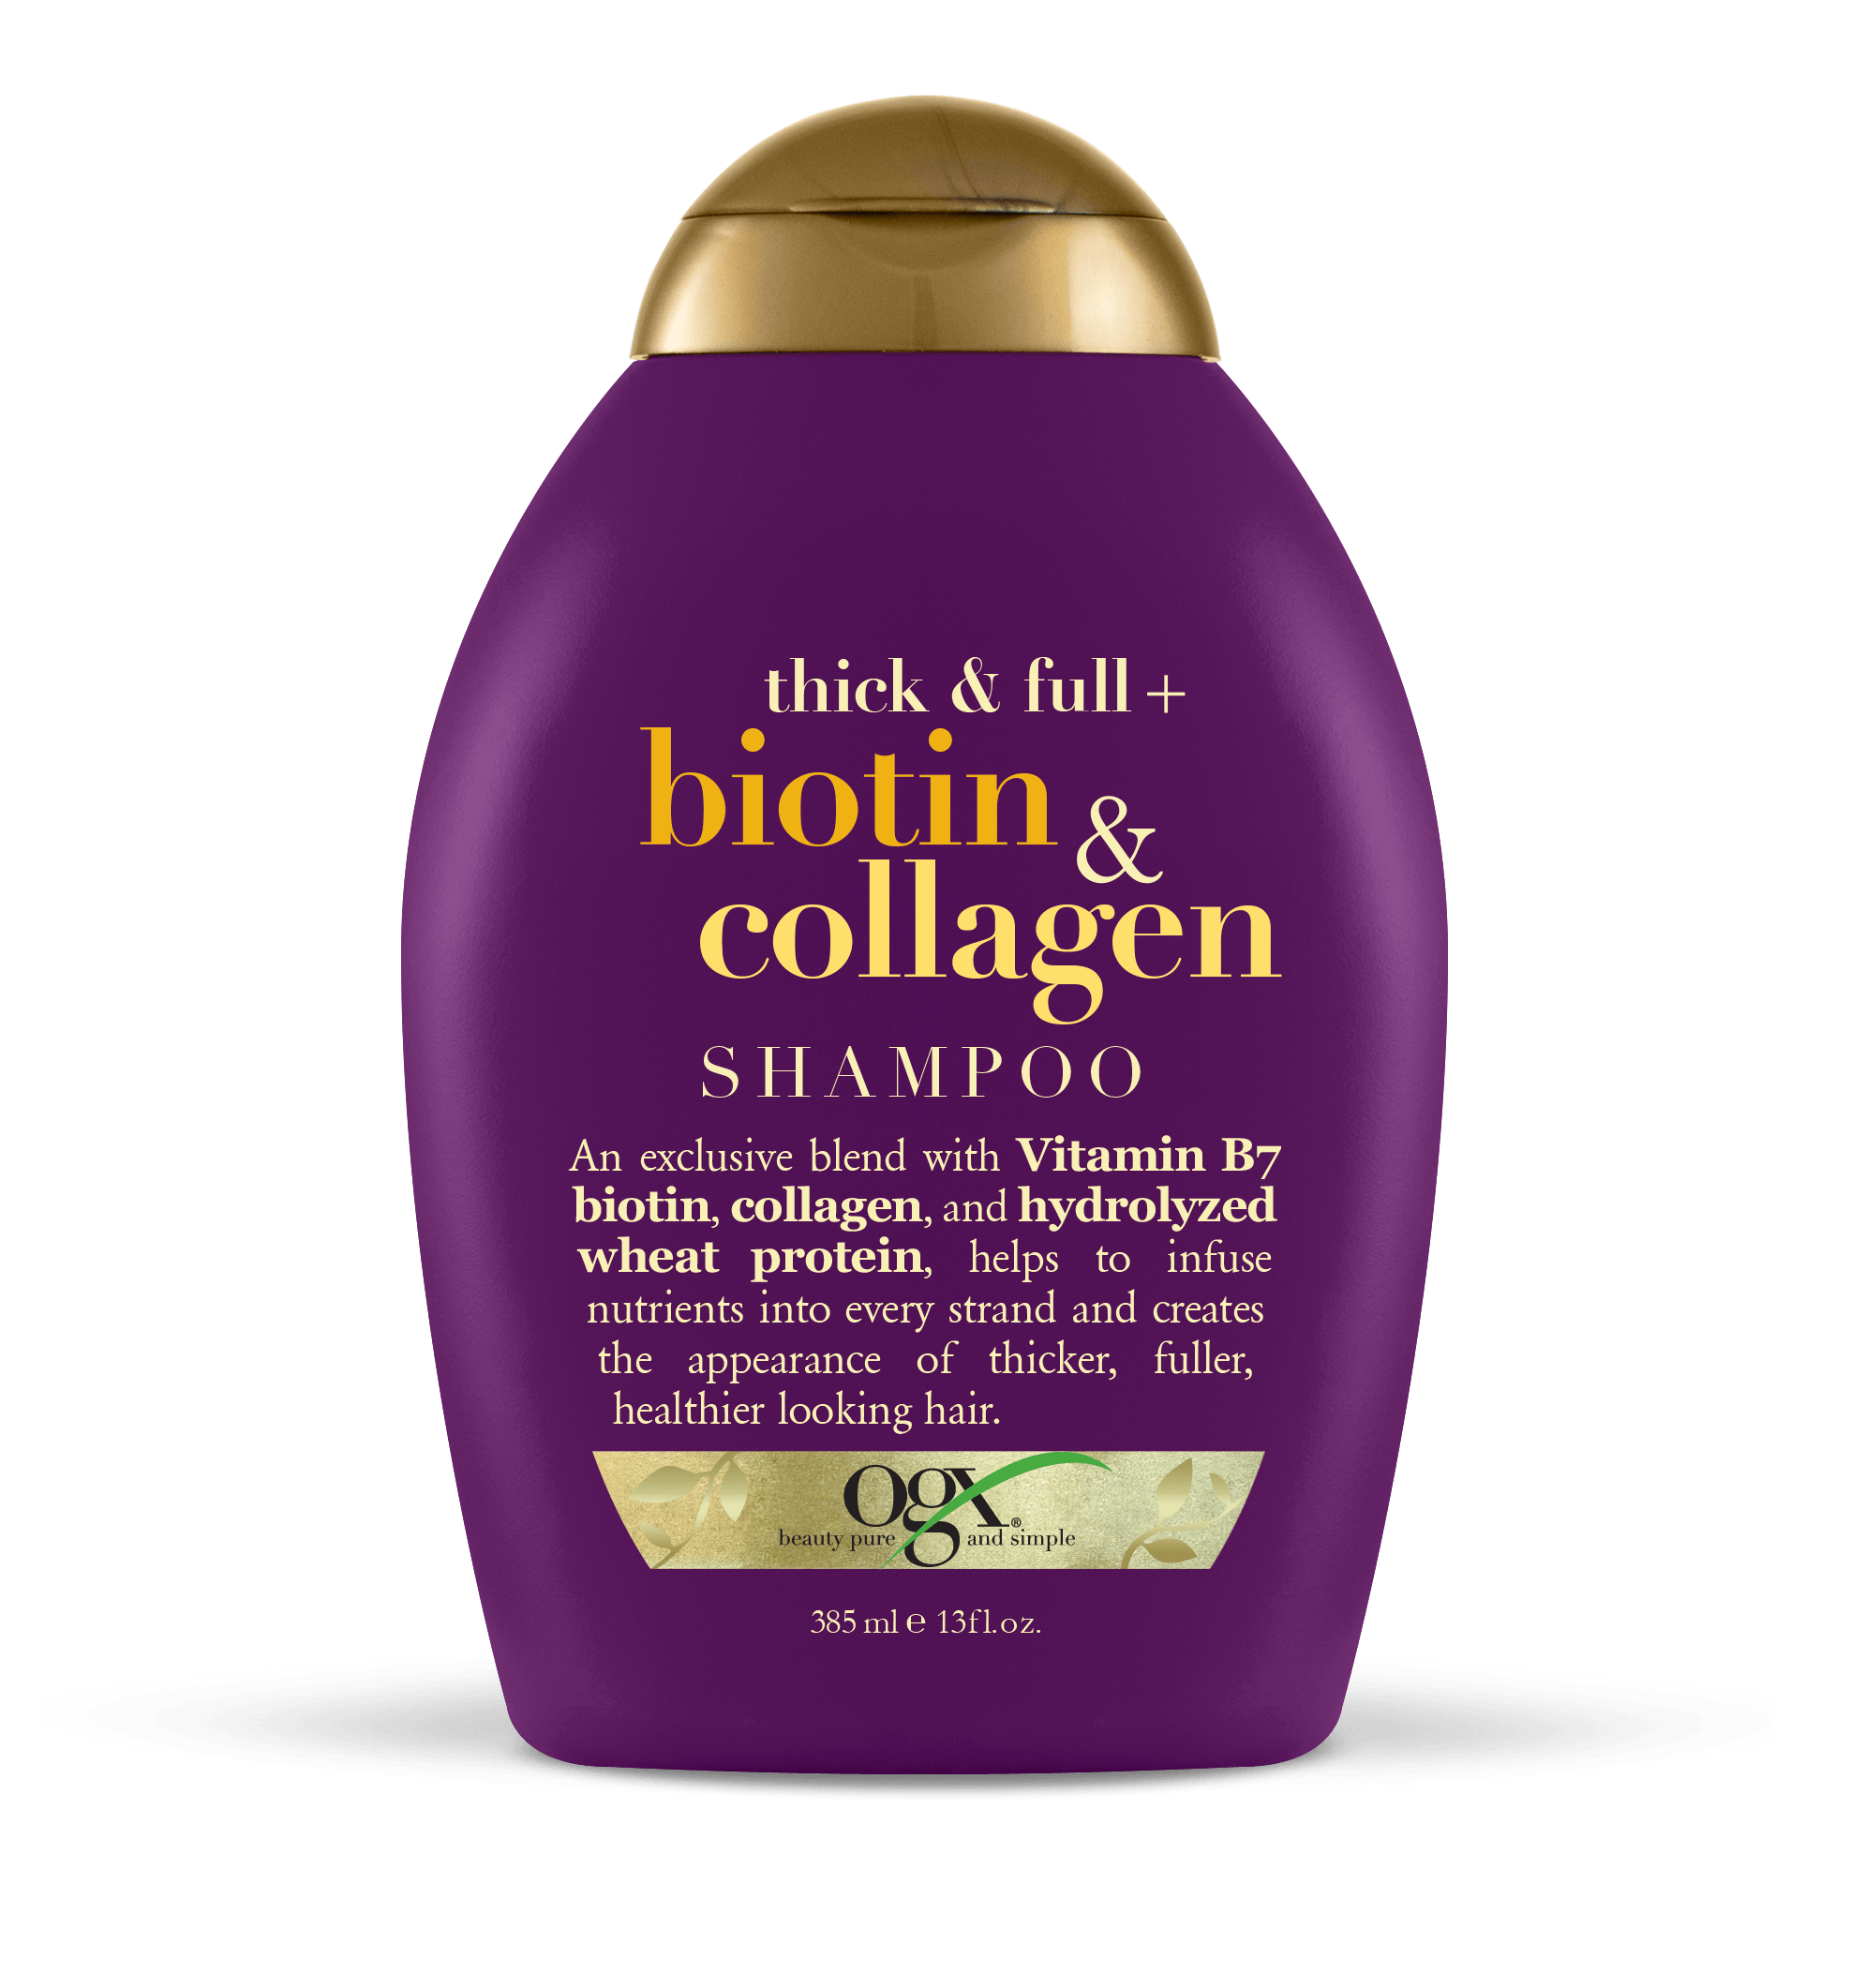 OGX Thick & Full Biotin & Collagen Shampoo, 13 FL OZ